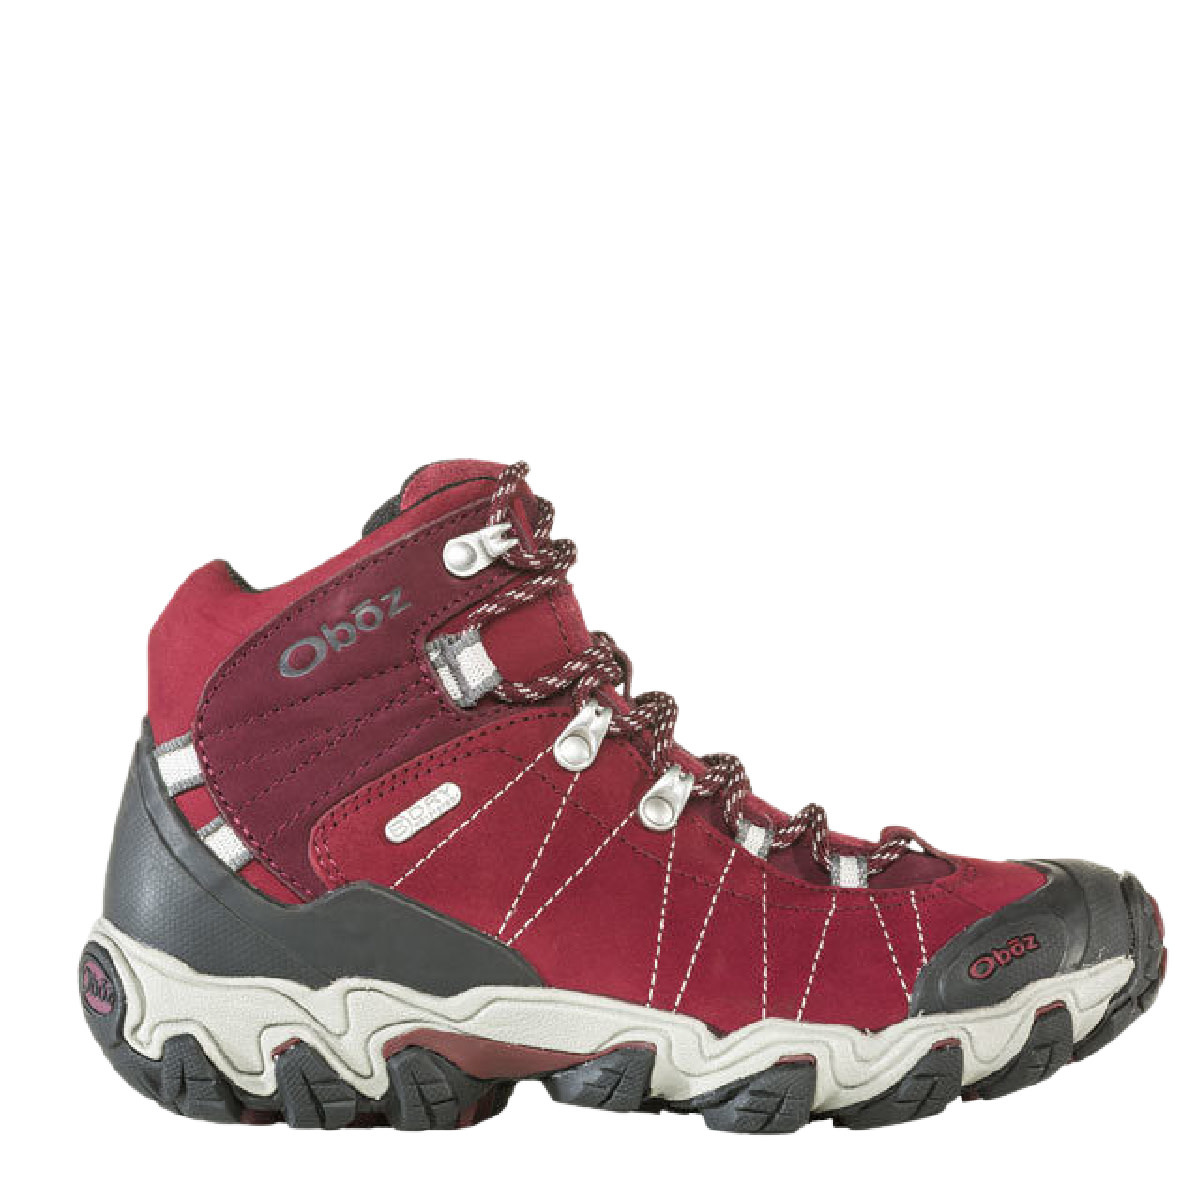 Oboz Oboz Bridger Mid B-Dry Rio Red